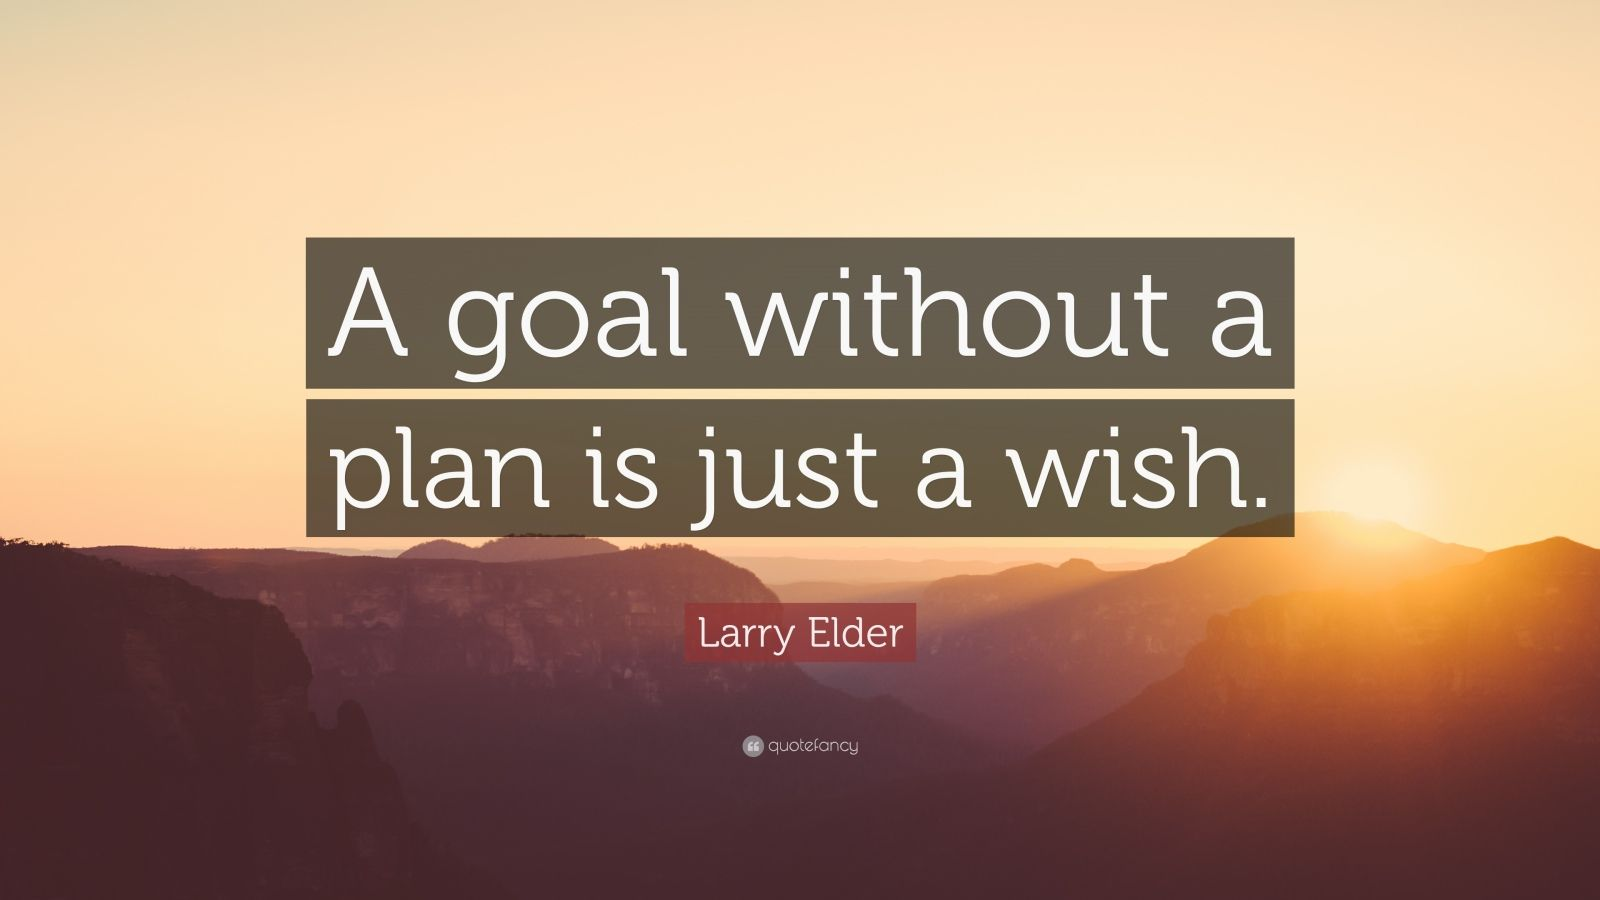 succeeding goals with or without an Goals are critical to ensure the difference between success and failure goals are critical to ensure of their goals than those without written goals.